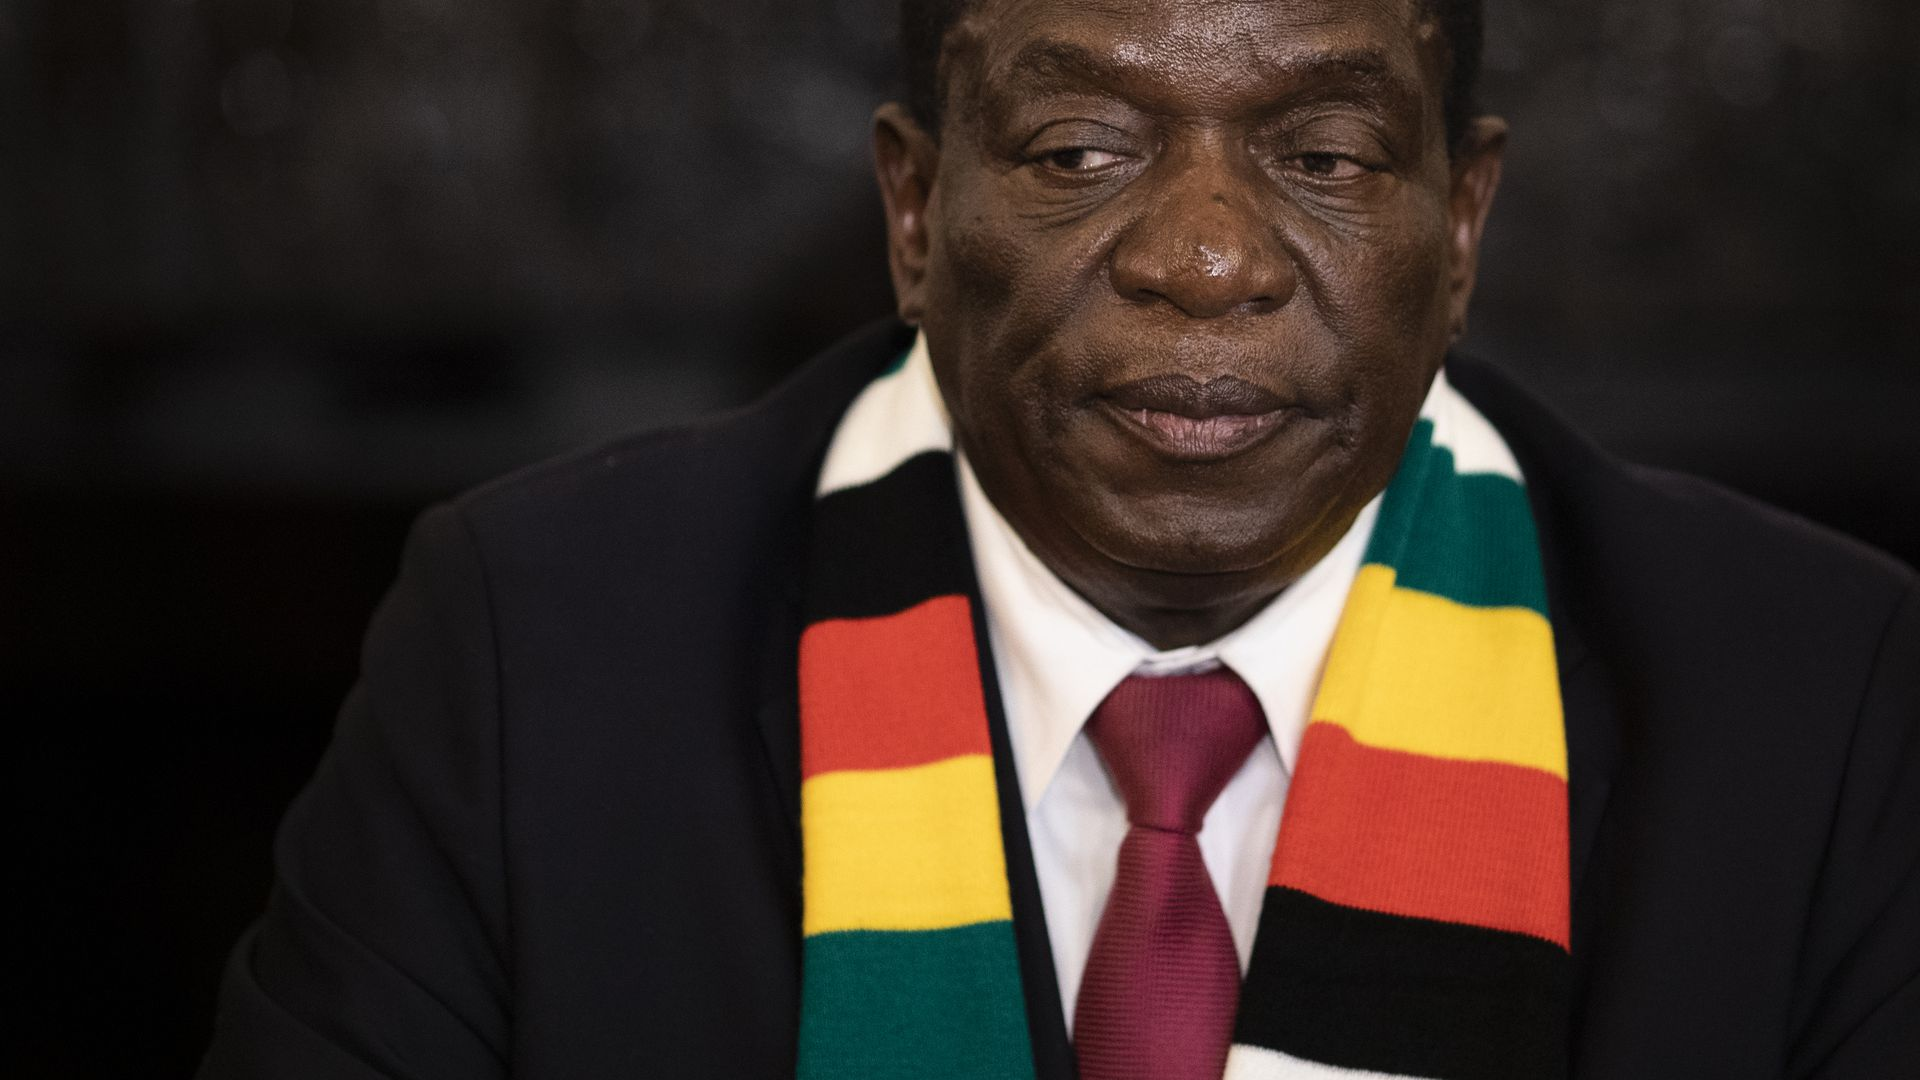 President Elect Emmerson Mnangagwa attends a press conference on August 3, 2018 in Harare, Zimbabwe. .